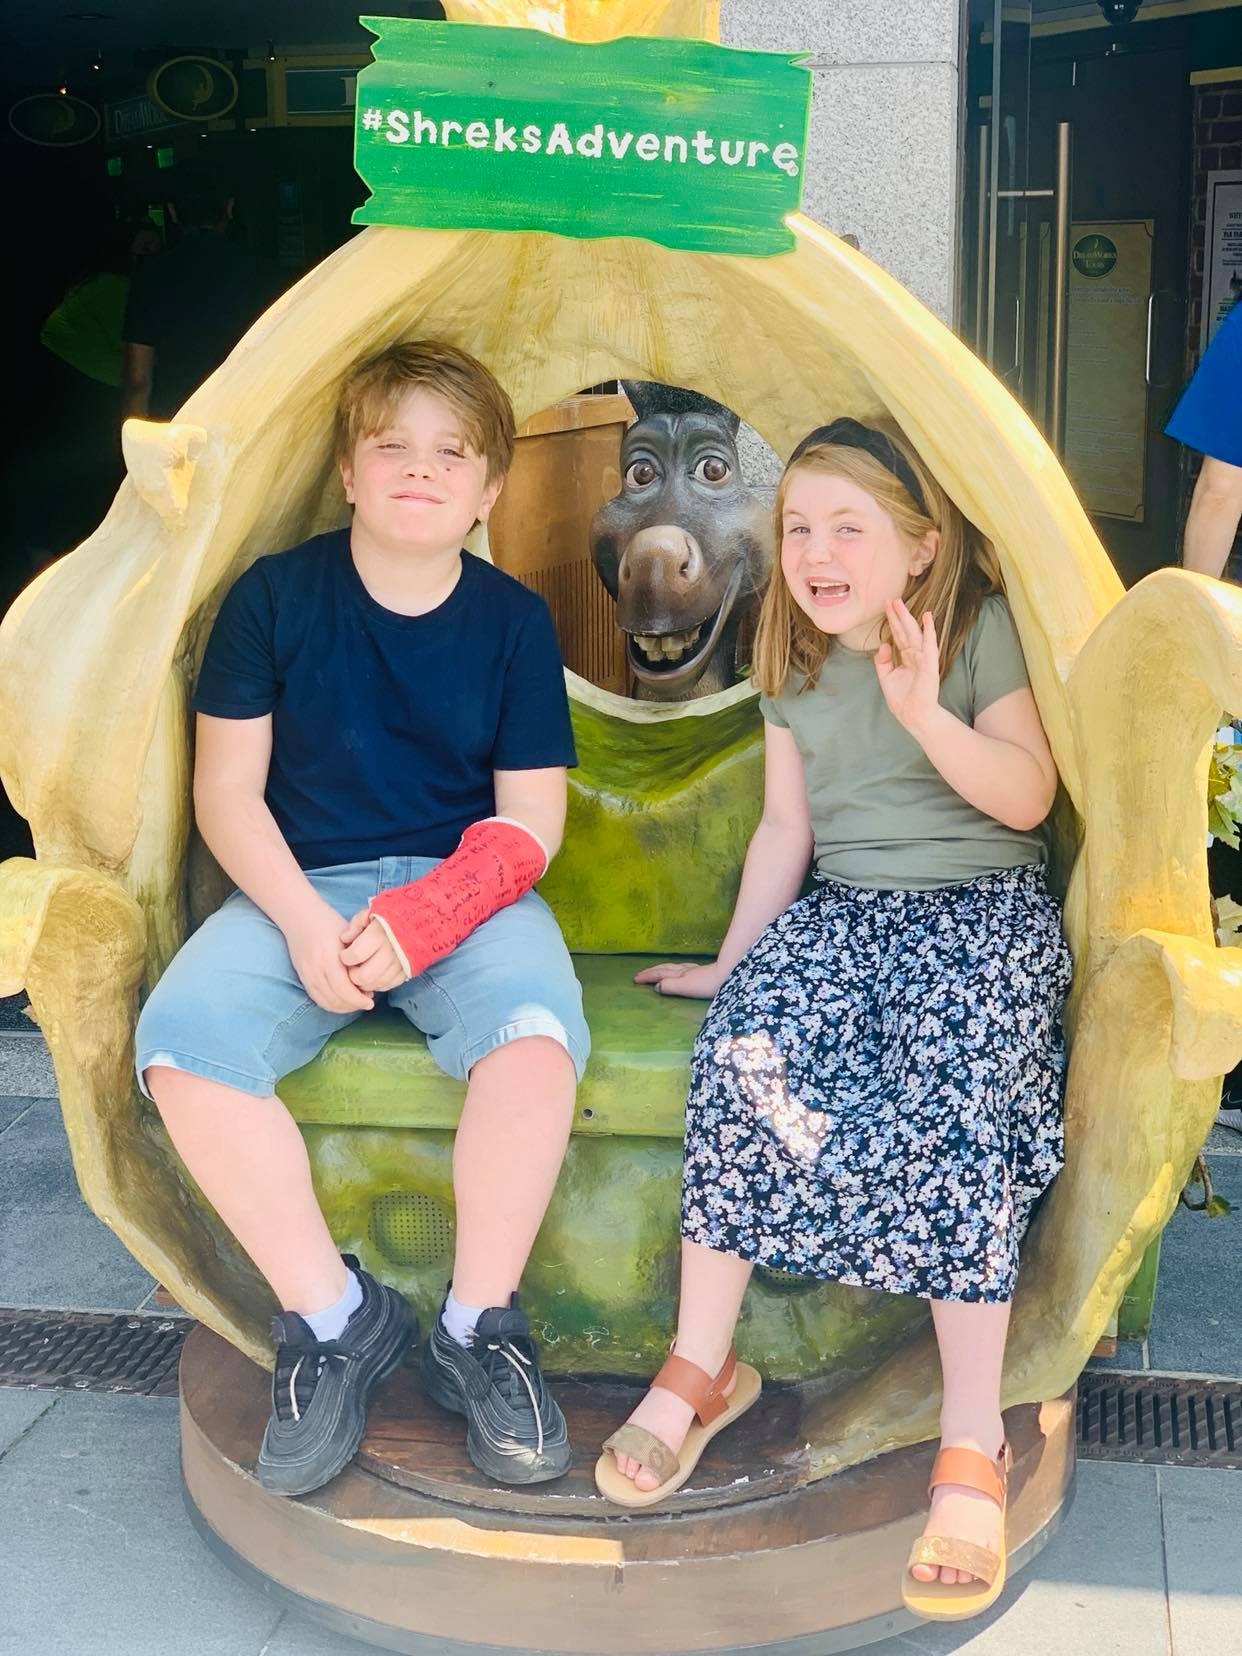 Shrek Adventure London, Whats it like and our review. Children posing for pictures outside